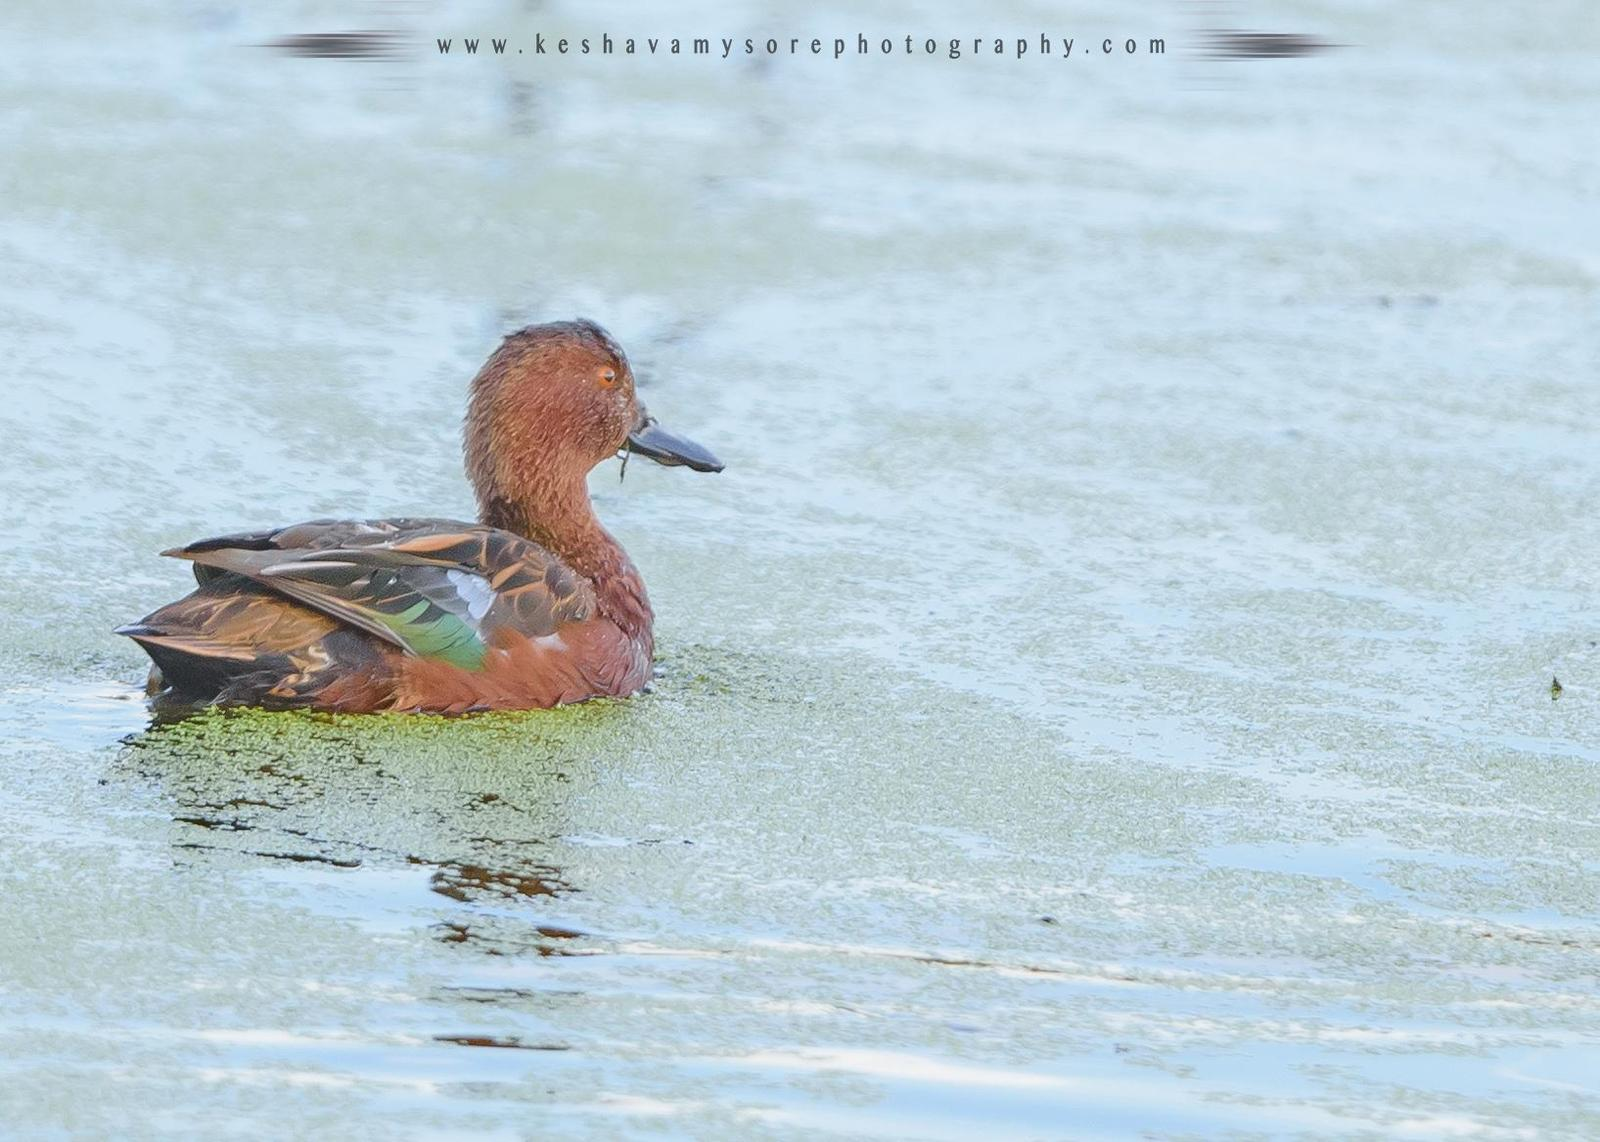 Cinnamon Teal Photo by Keshava Mysore